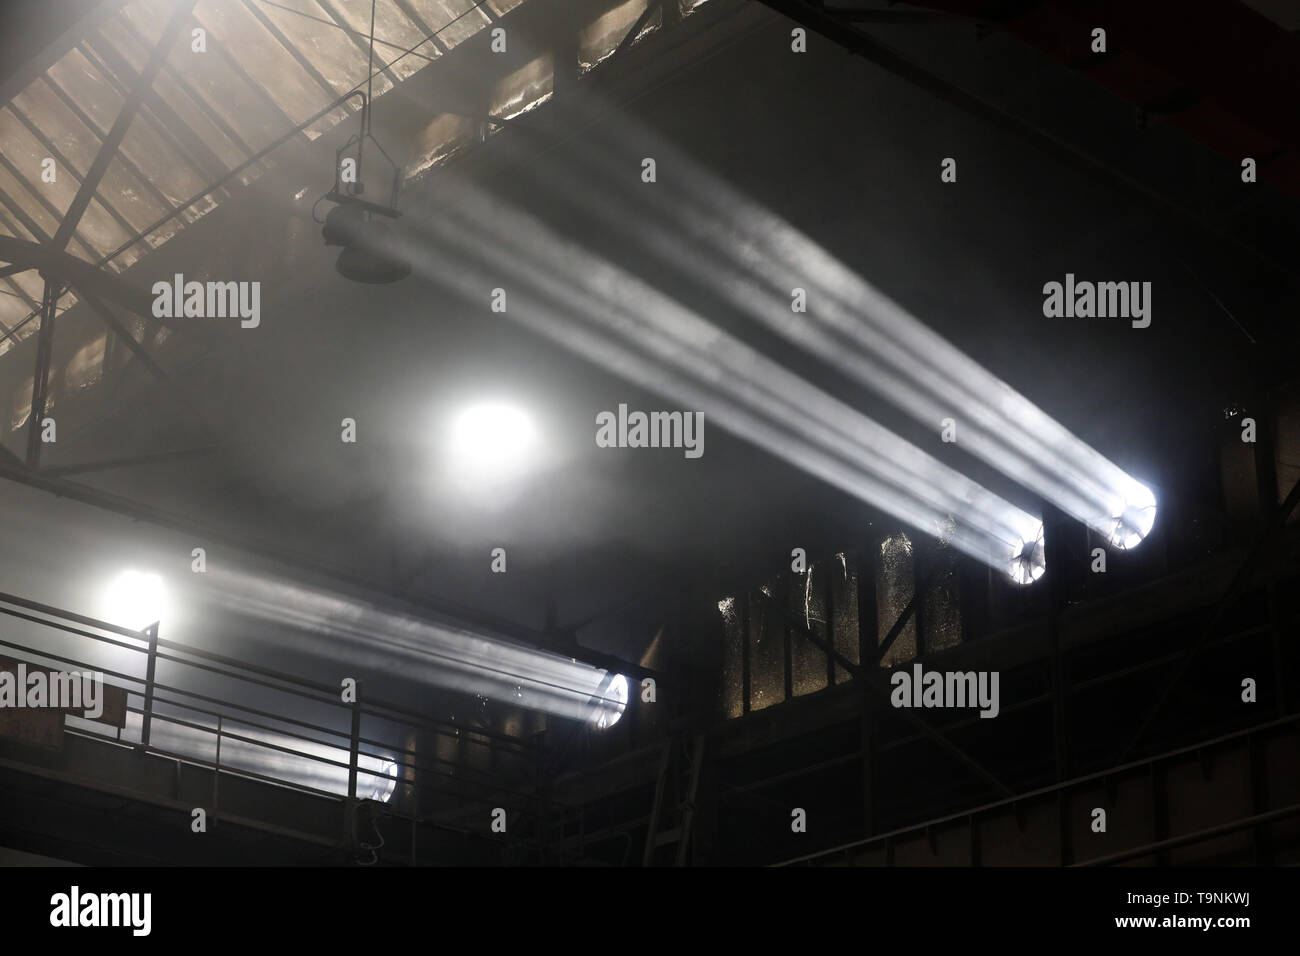 Waren, Germany. 08th May, 2019. In the foundry of Mecklenburger Metallguss GmbH MMG, the misty air shines in the sunlight that shines through the fan openings while a large ship propeller is being cast. Less than a year after its transition to independence, MMG sees itself on the upswing again. Sales of 50 million euros are expected for 2019, about ten million euros more than in 2018. Credit: Bernd Wüstneck/dpa/Alamy Live News - Stock Image